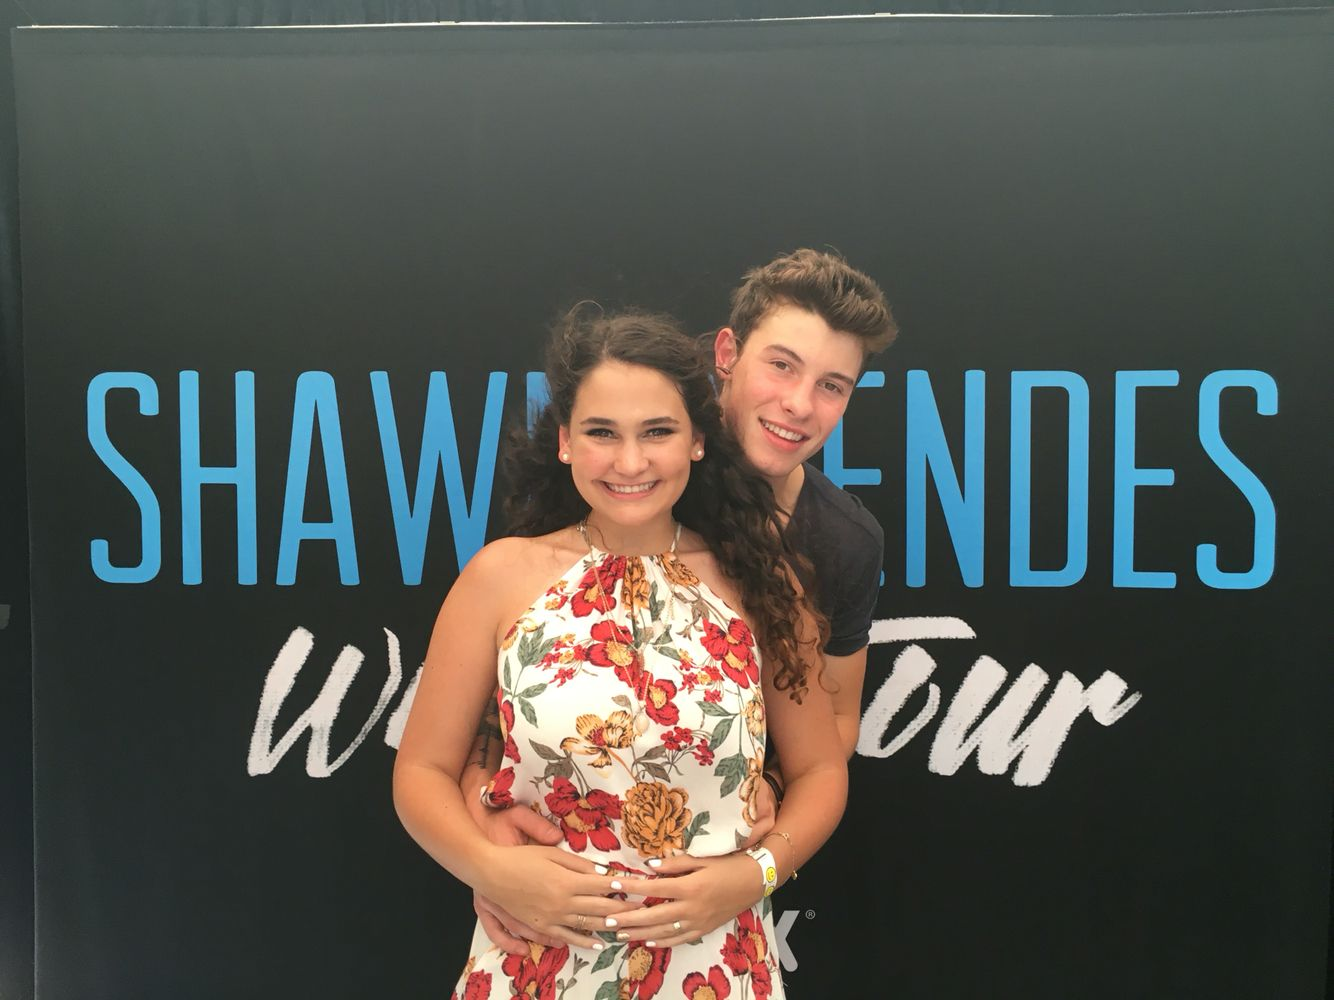 Shawn mendes world tour meet and greet 2016 florida shawn mendes shawn mendes world tour meet and greet 2016 florida kristyandbryce Gallery